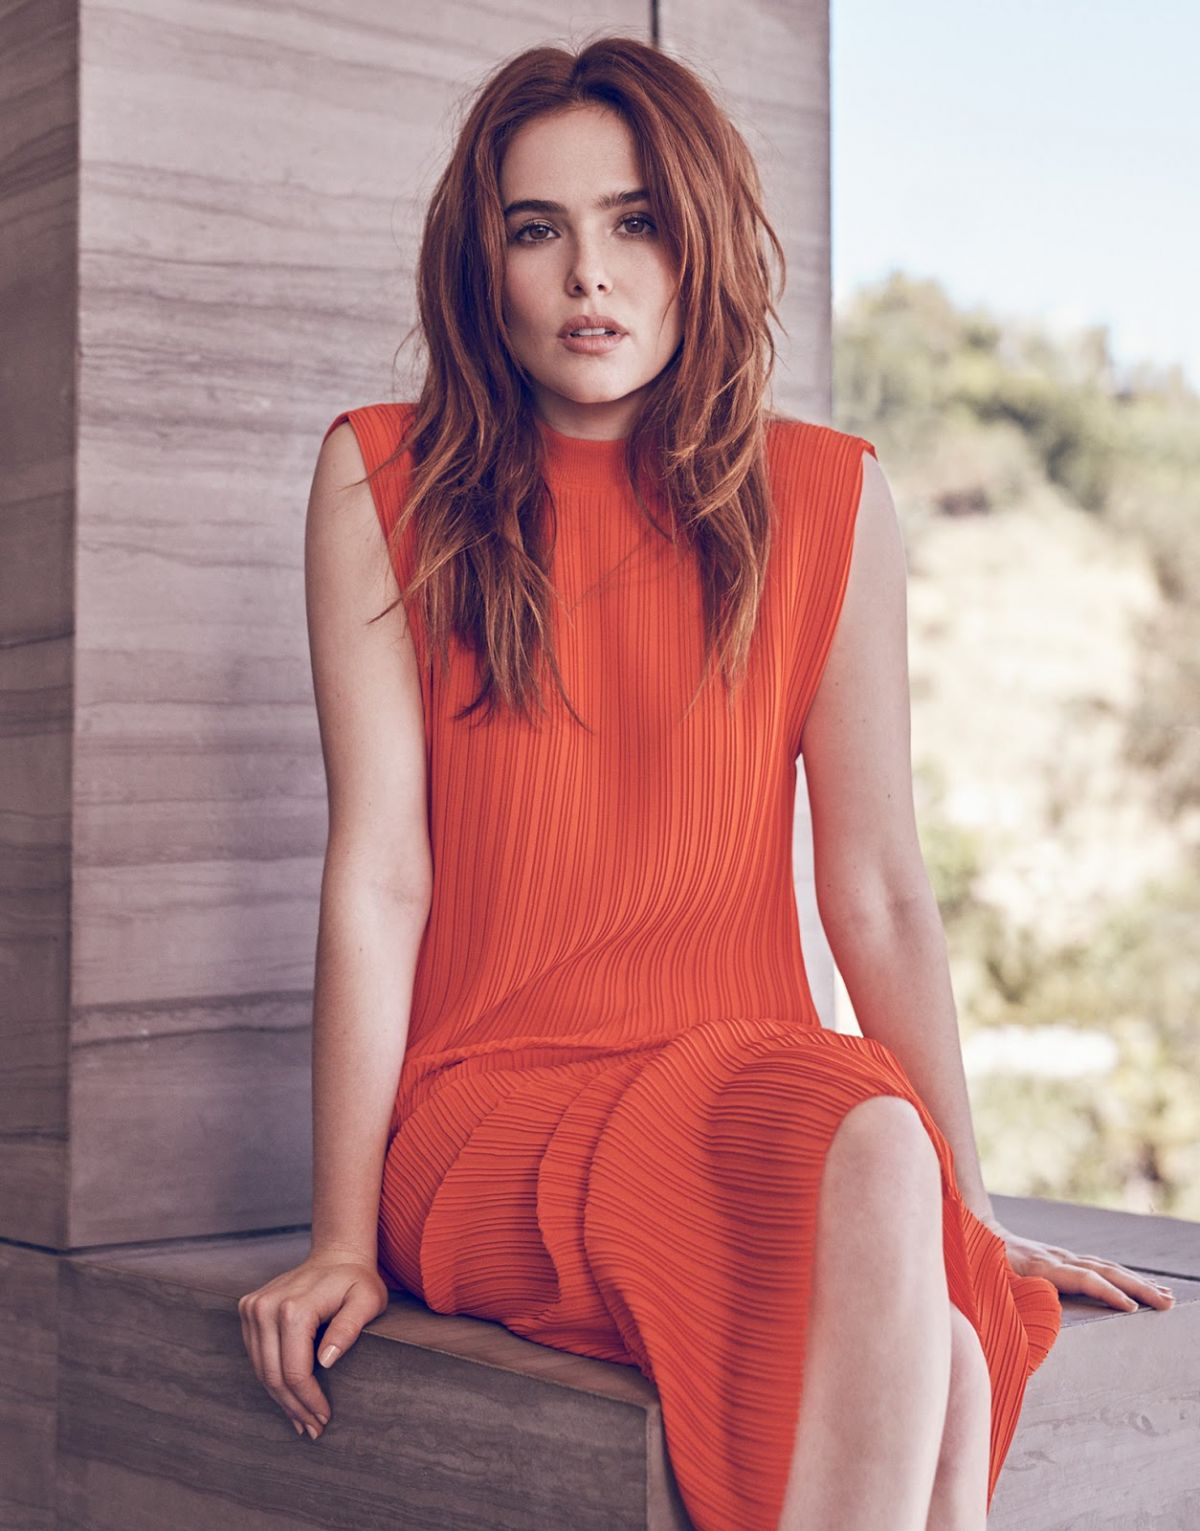 ZOEY DEUTCH in Edit Ma... Emma Stone Imdb